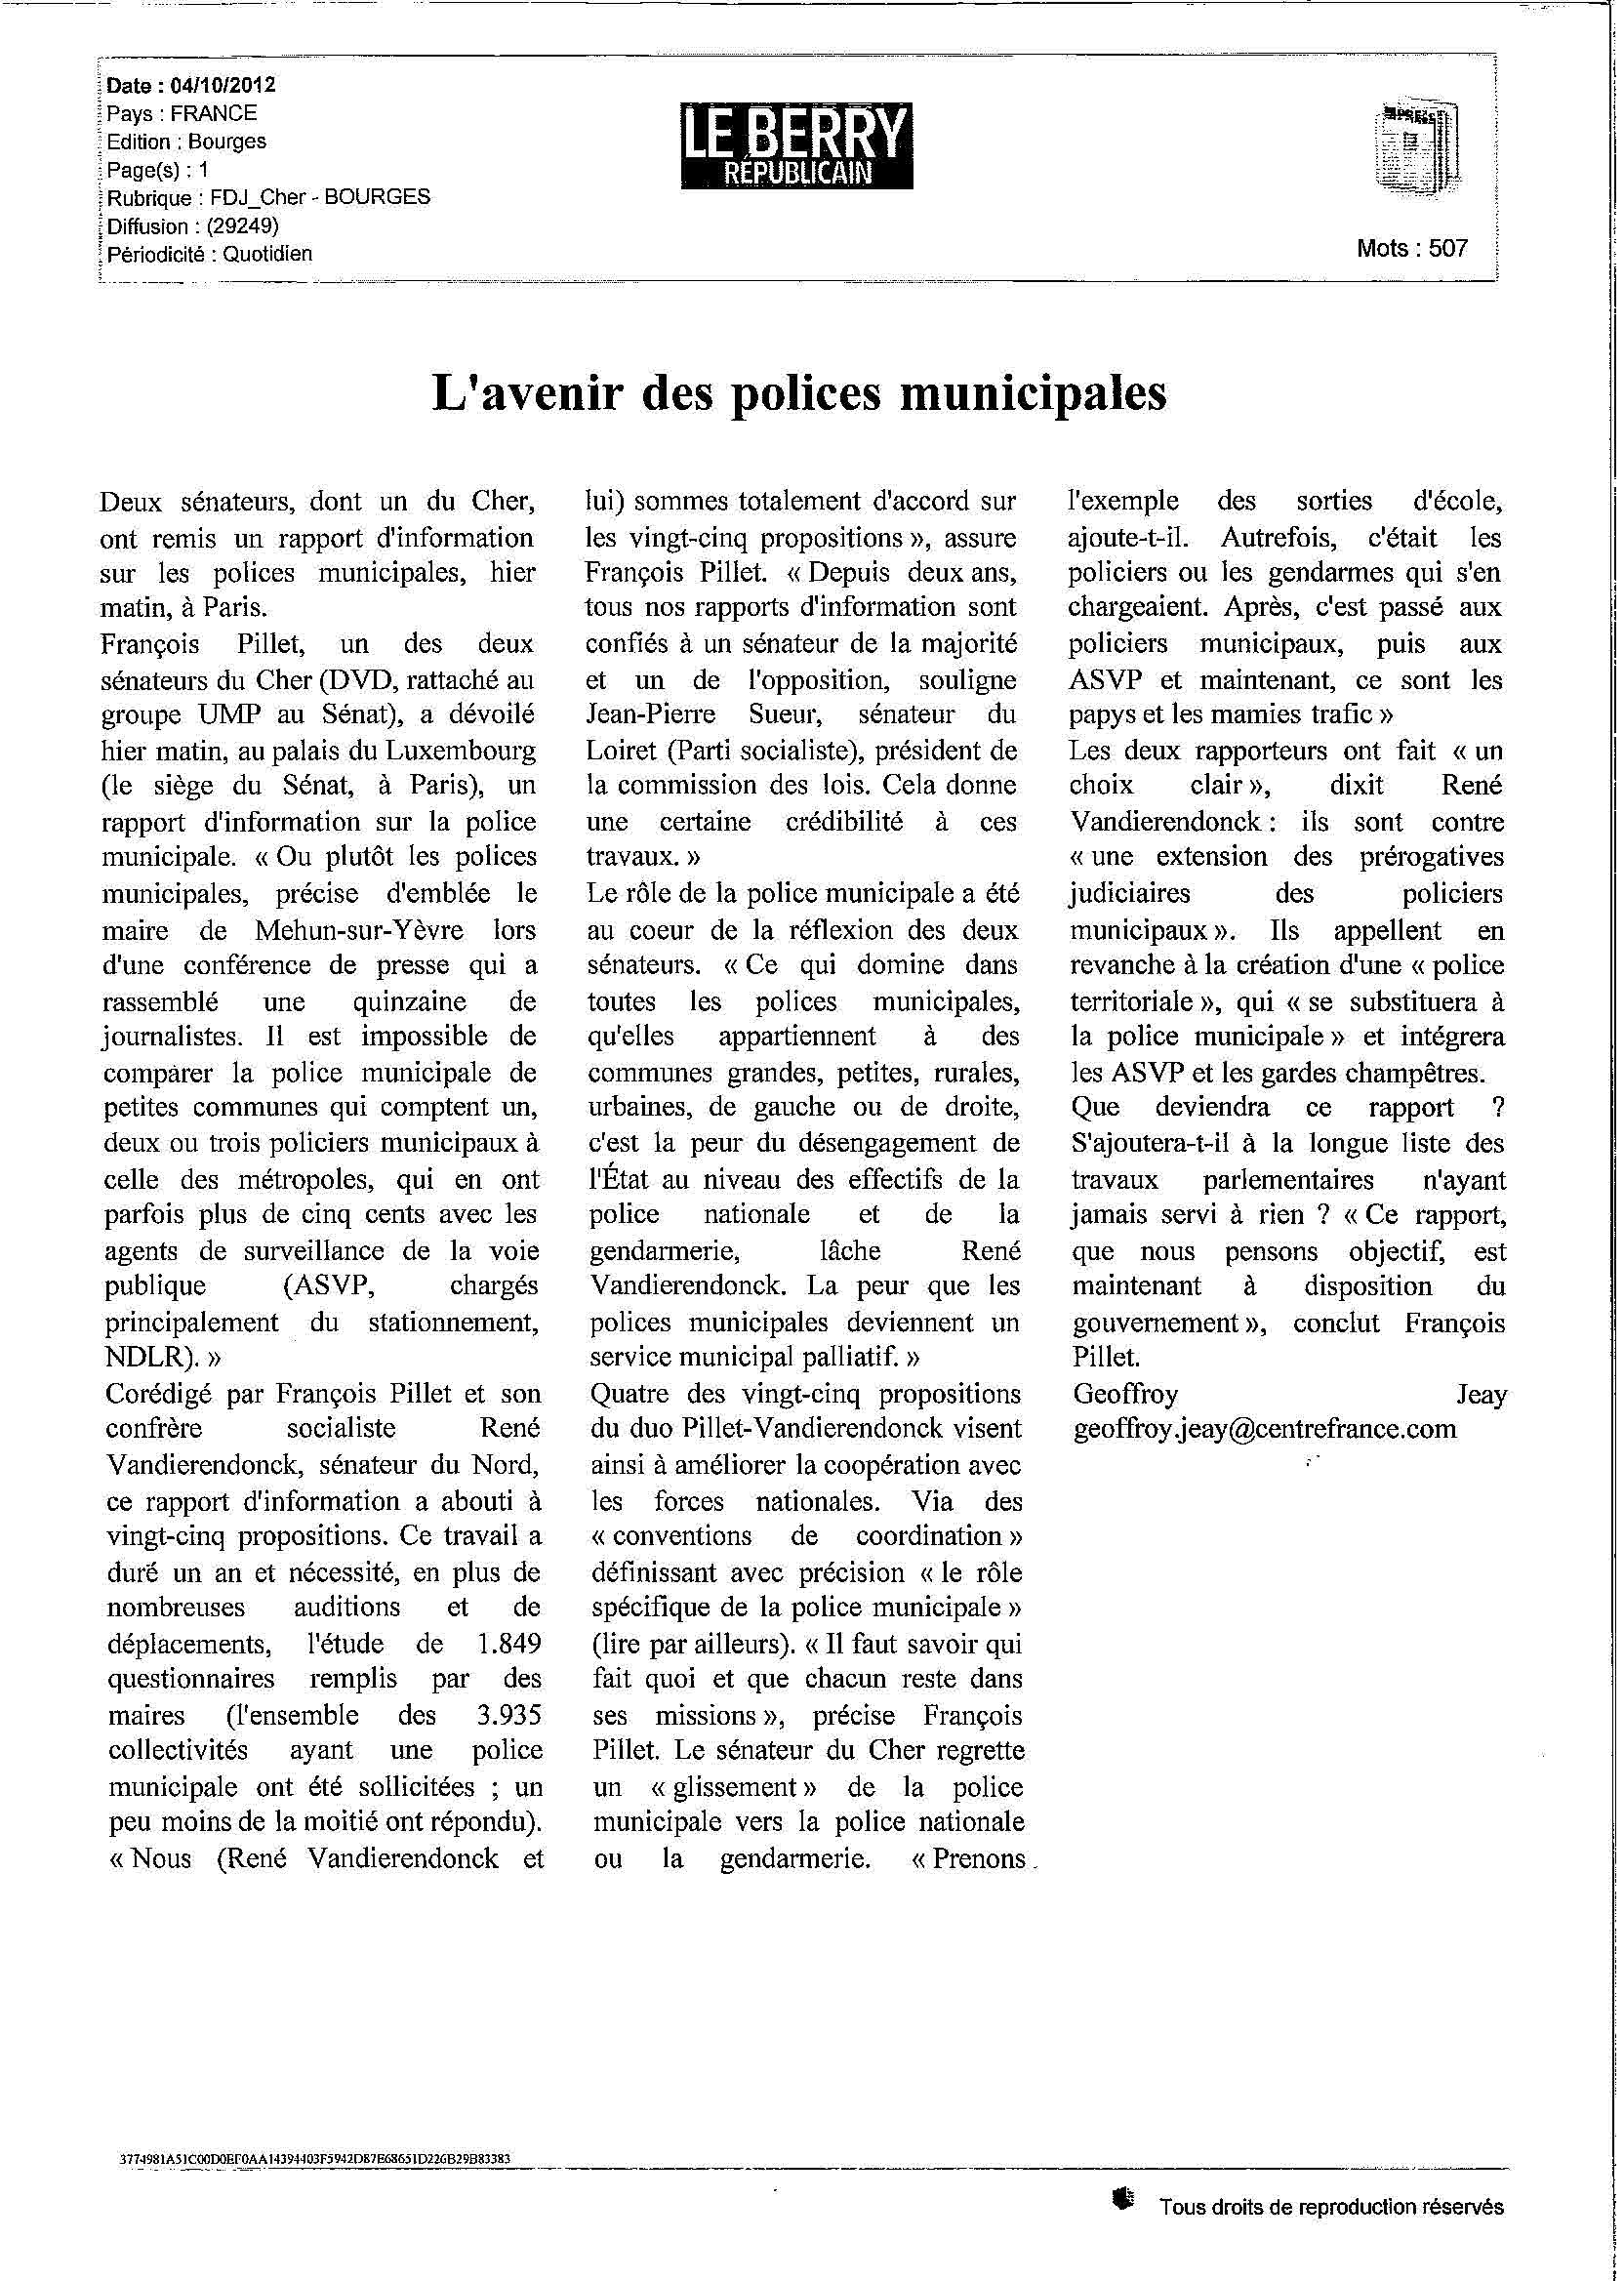 121004_Berry-republicain_polices-municipales